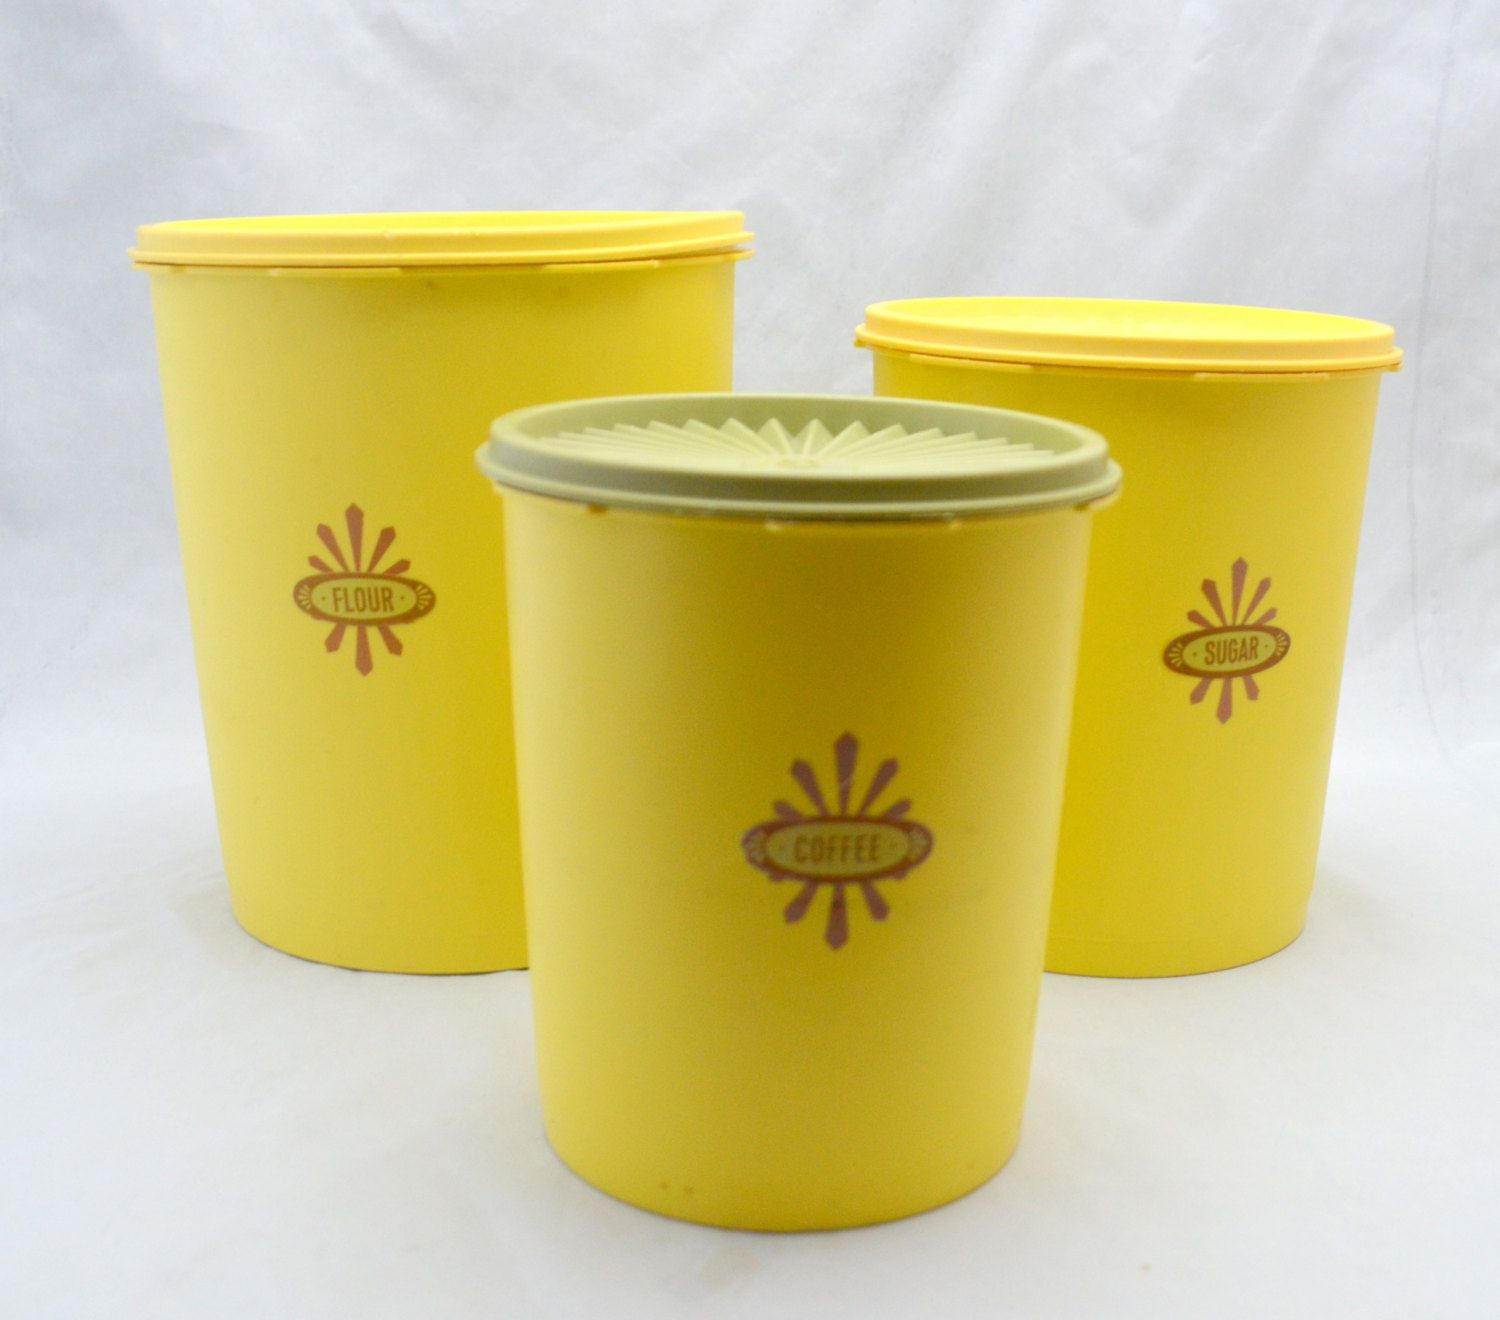 Vintage Tupperware Canister Set Harvest Gold Servalier Flour Etsy Vintage Tupperware Tupperware Canisters Tupperware